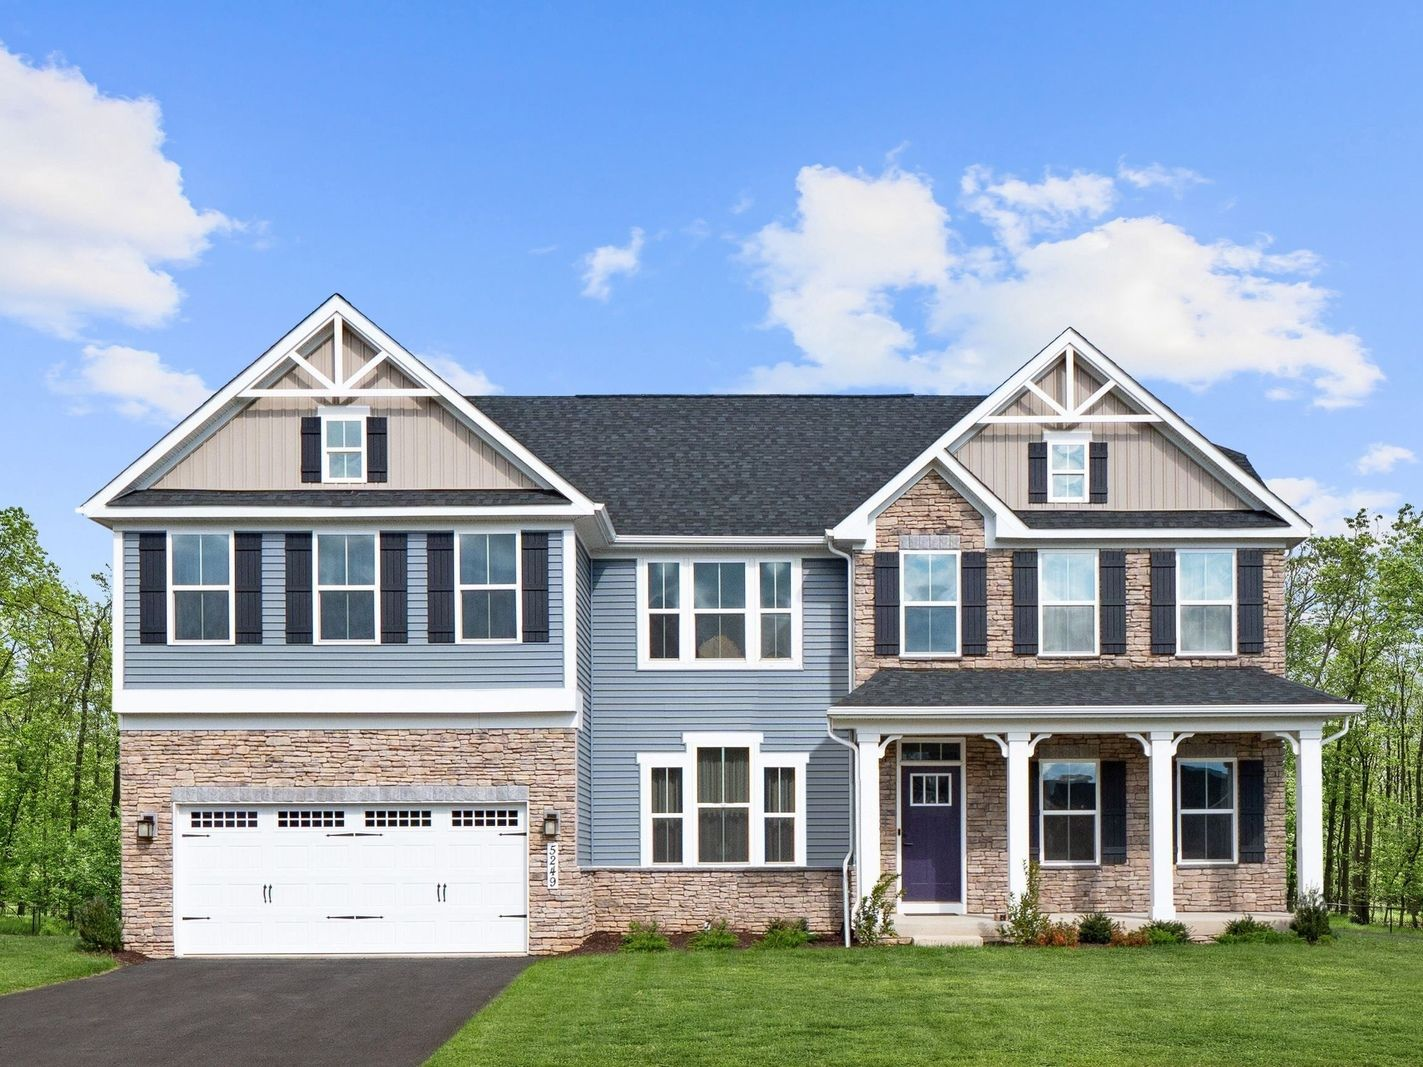 Single Family for Active at Crossland At The Canal - Corsica 249 Mistmeadow Drive Bear, Delaware 19701 United States